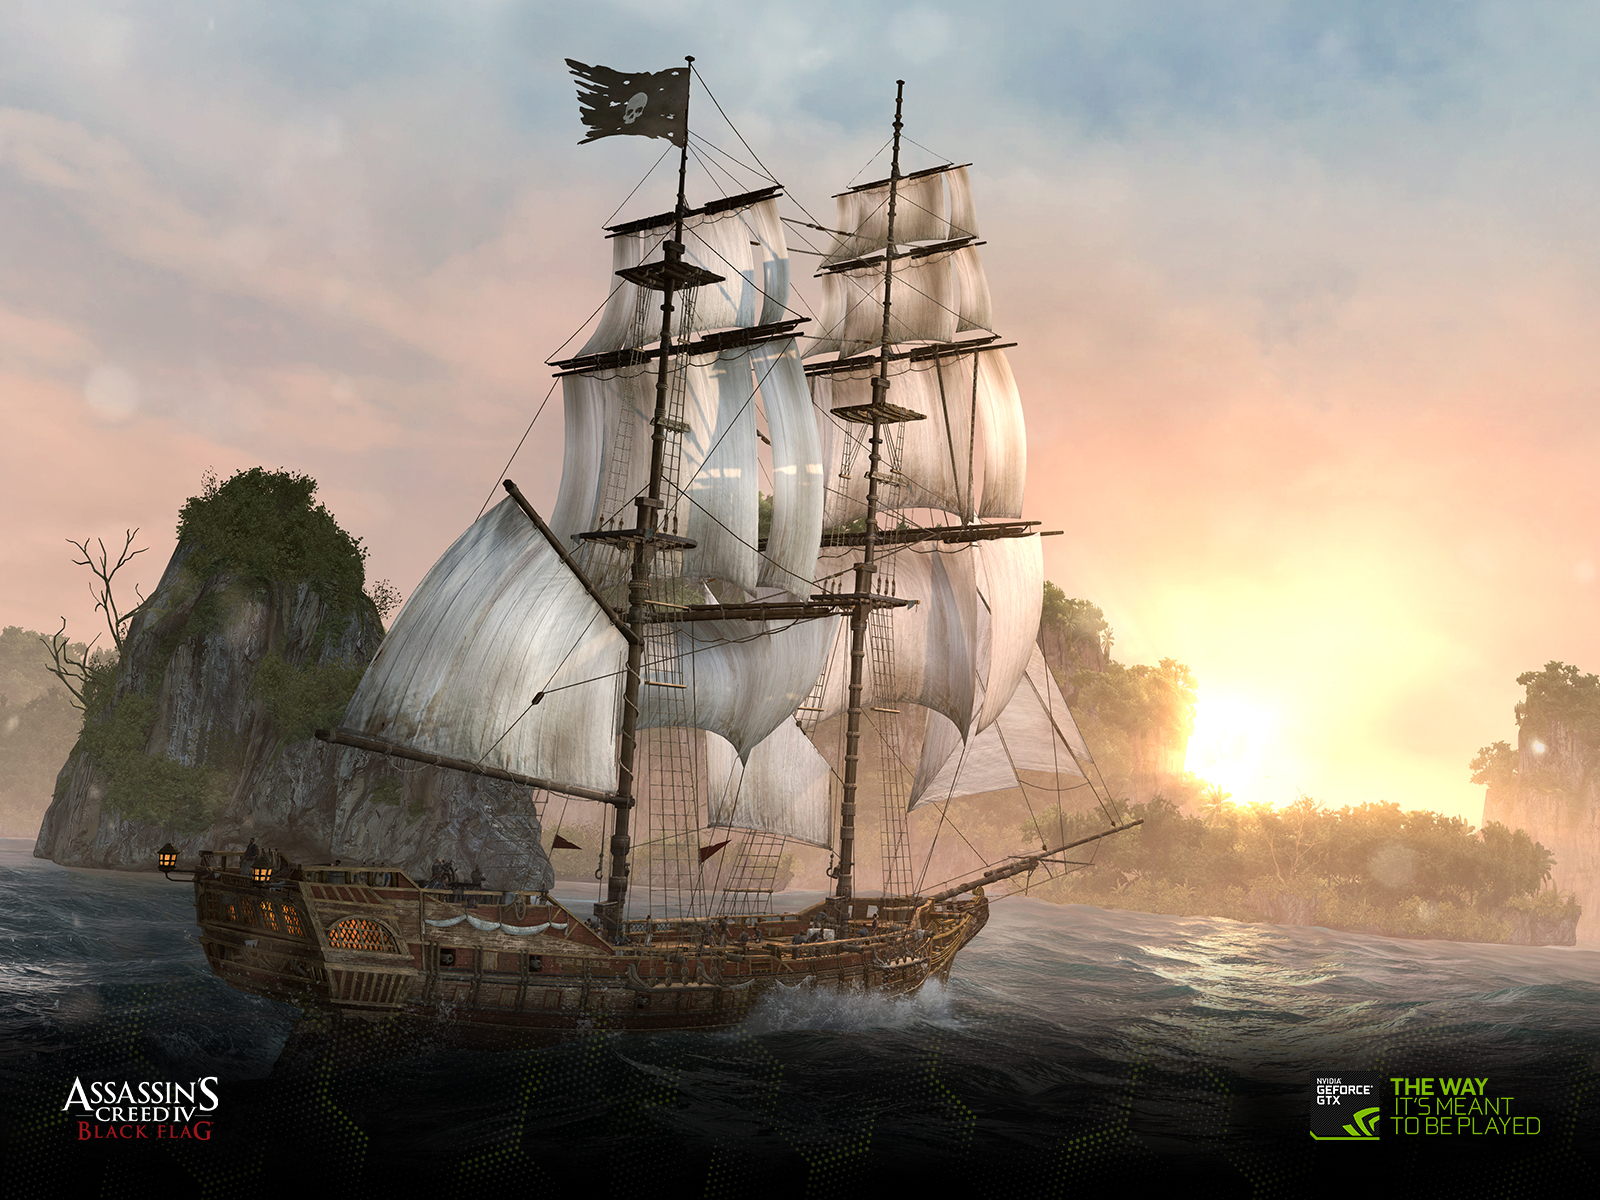 Download The Assassins Creed Iv Black Flag Wallpapers Geforce